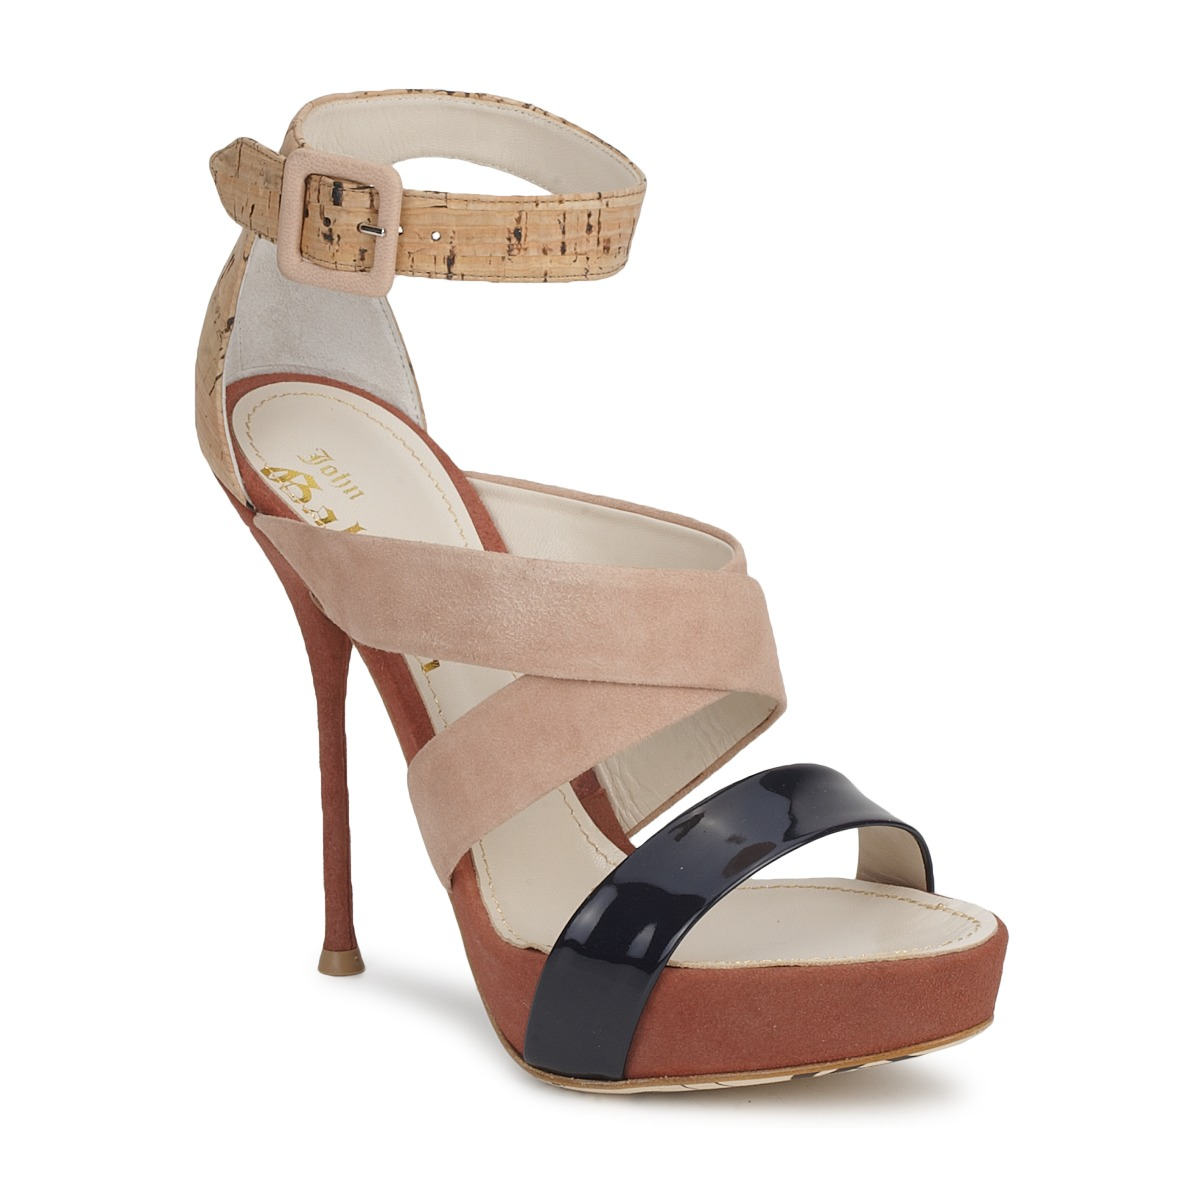 Sandale John Galliano AN6363 Rose / Marine / Beige